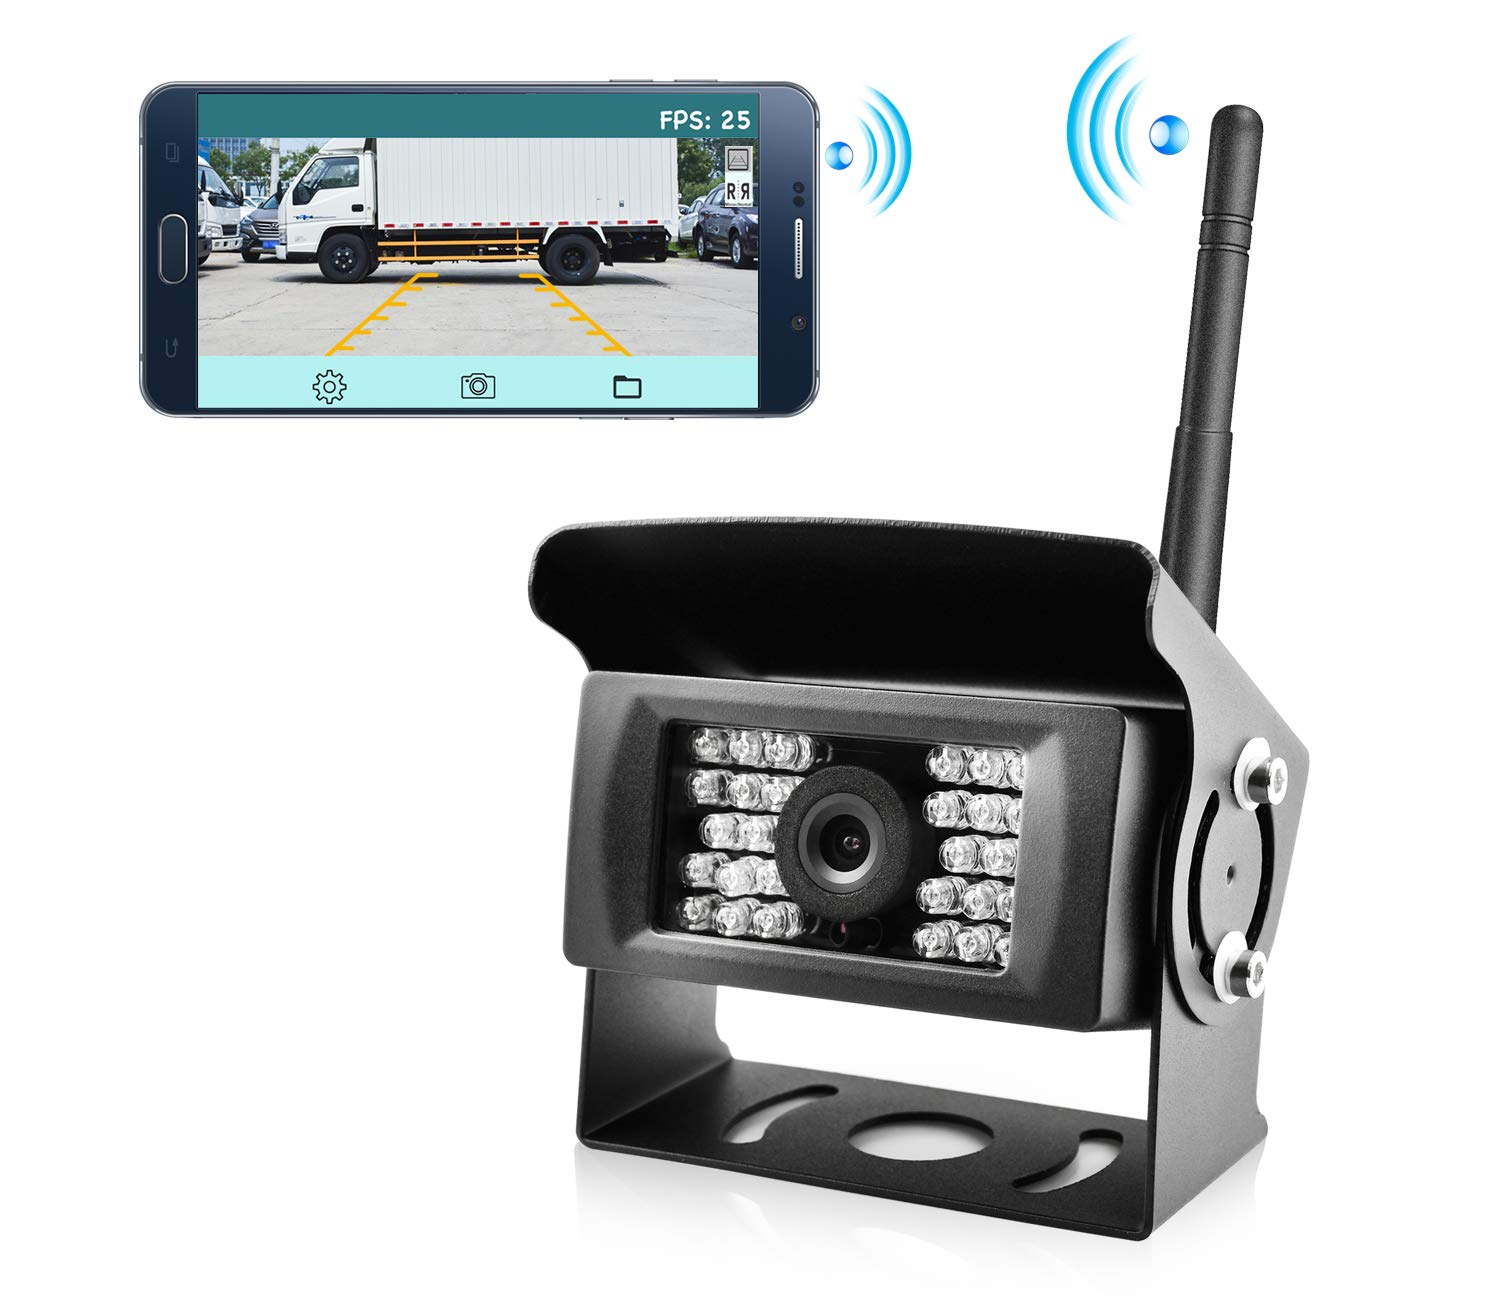 Wireless Phone Backup Camera Reversing Camera for Trucks RV Trailers and Campers WiFi App Backup Camera Waterproof Rearview Camera Works with Smartphone, Tablet Android (Black)